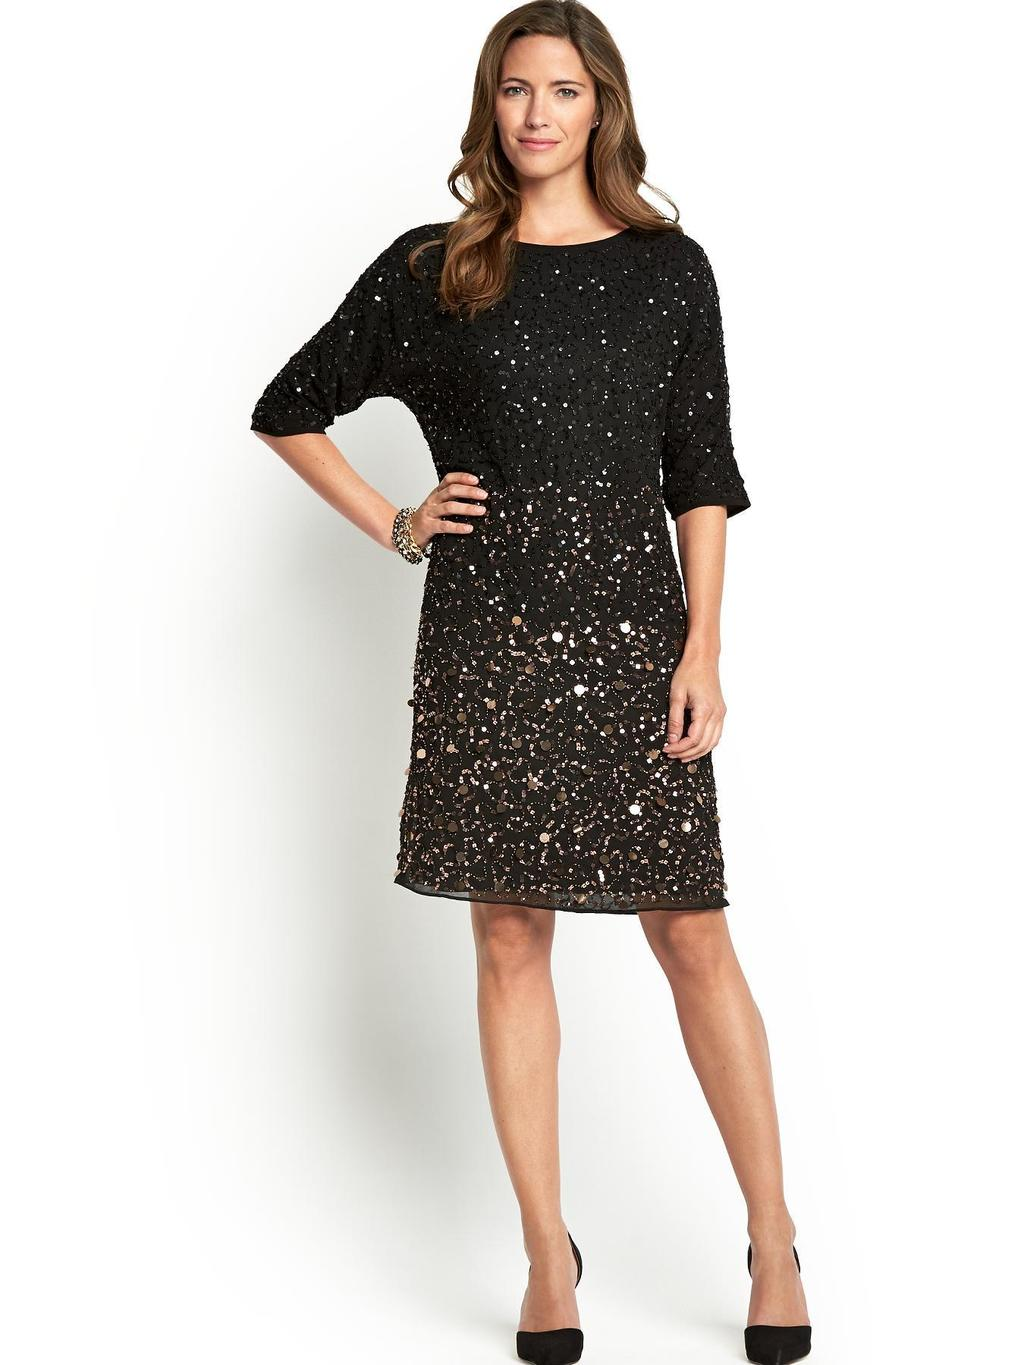 Graduated Split Sleeve Sequin Tunic, Black - style: tunic; neckline: round neck; fit: loose; pattern: plain; predominant colour: black; occasions: evening, occasion; length: just above the knee; fibres: polyester/polyamide - 100%; back detail: keyhole/peephole detail at back; sleeve length: half sleeve; sleeve style: standard; texture group: sheer fabrics/chiffon/organza etc.; pattern type: fabric; embellishment: sequins; season: a/w 2014; wardrobe: event; embellishment location: all over